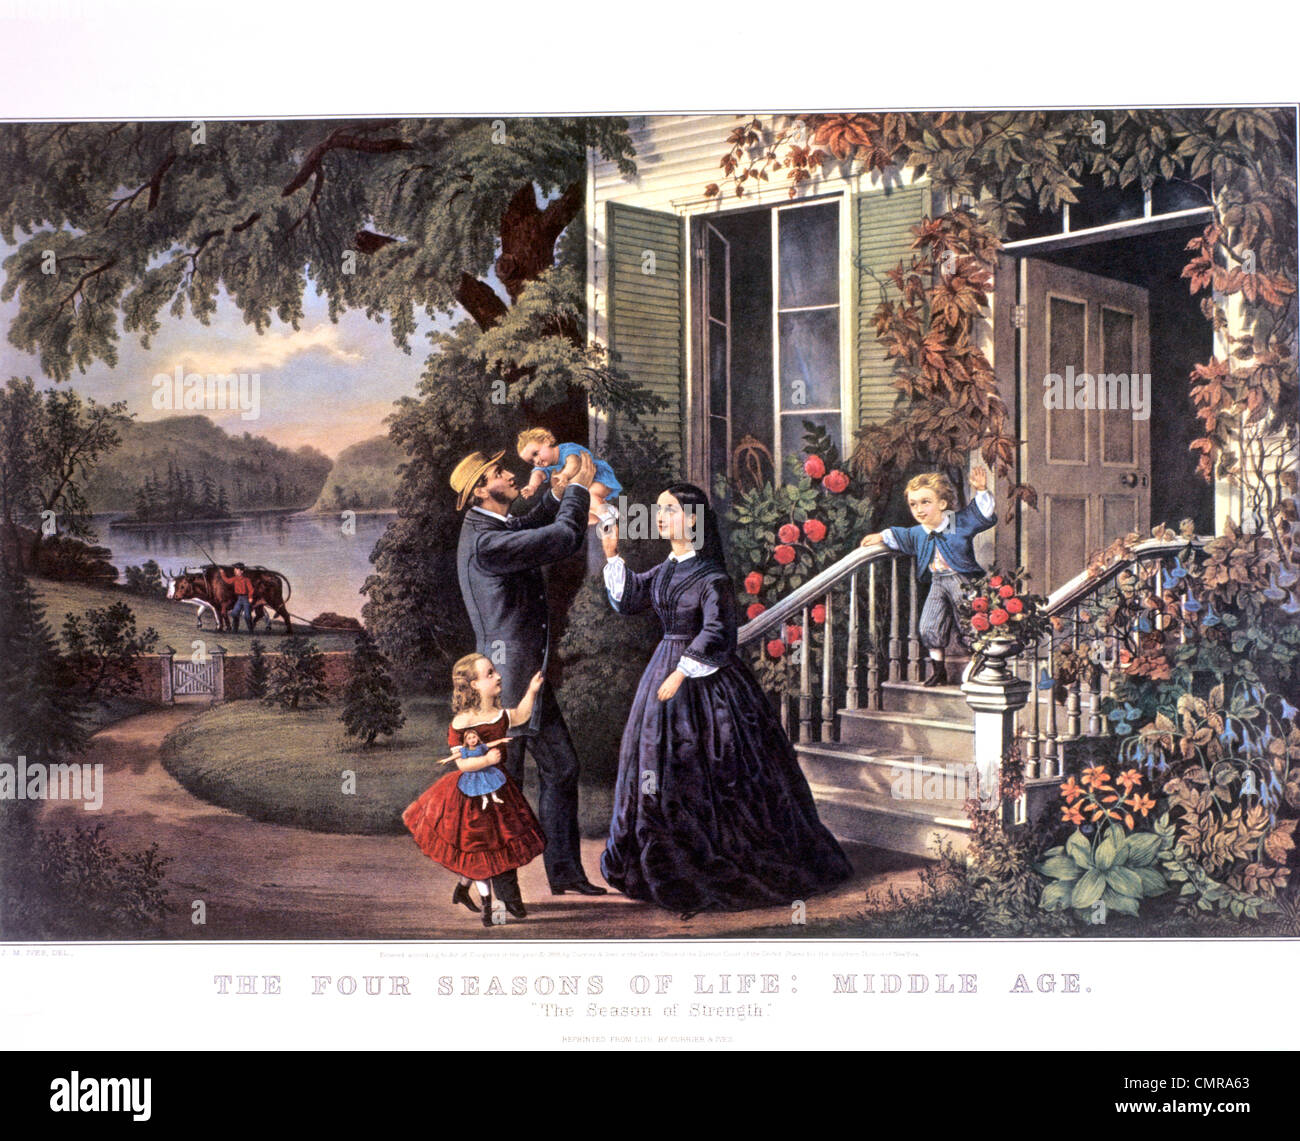 1800s THE SEASONS OF LIFE MIDDLE AGE SEASON OF STRENGTH CURRIER & IVES PRINT 1868 - Stock Image